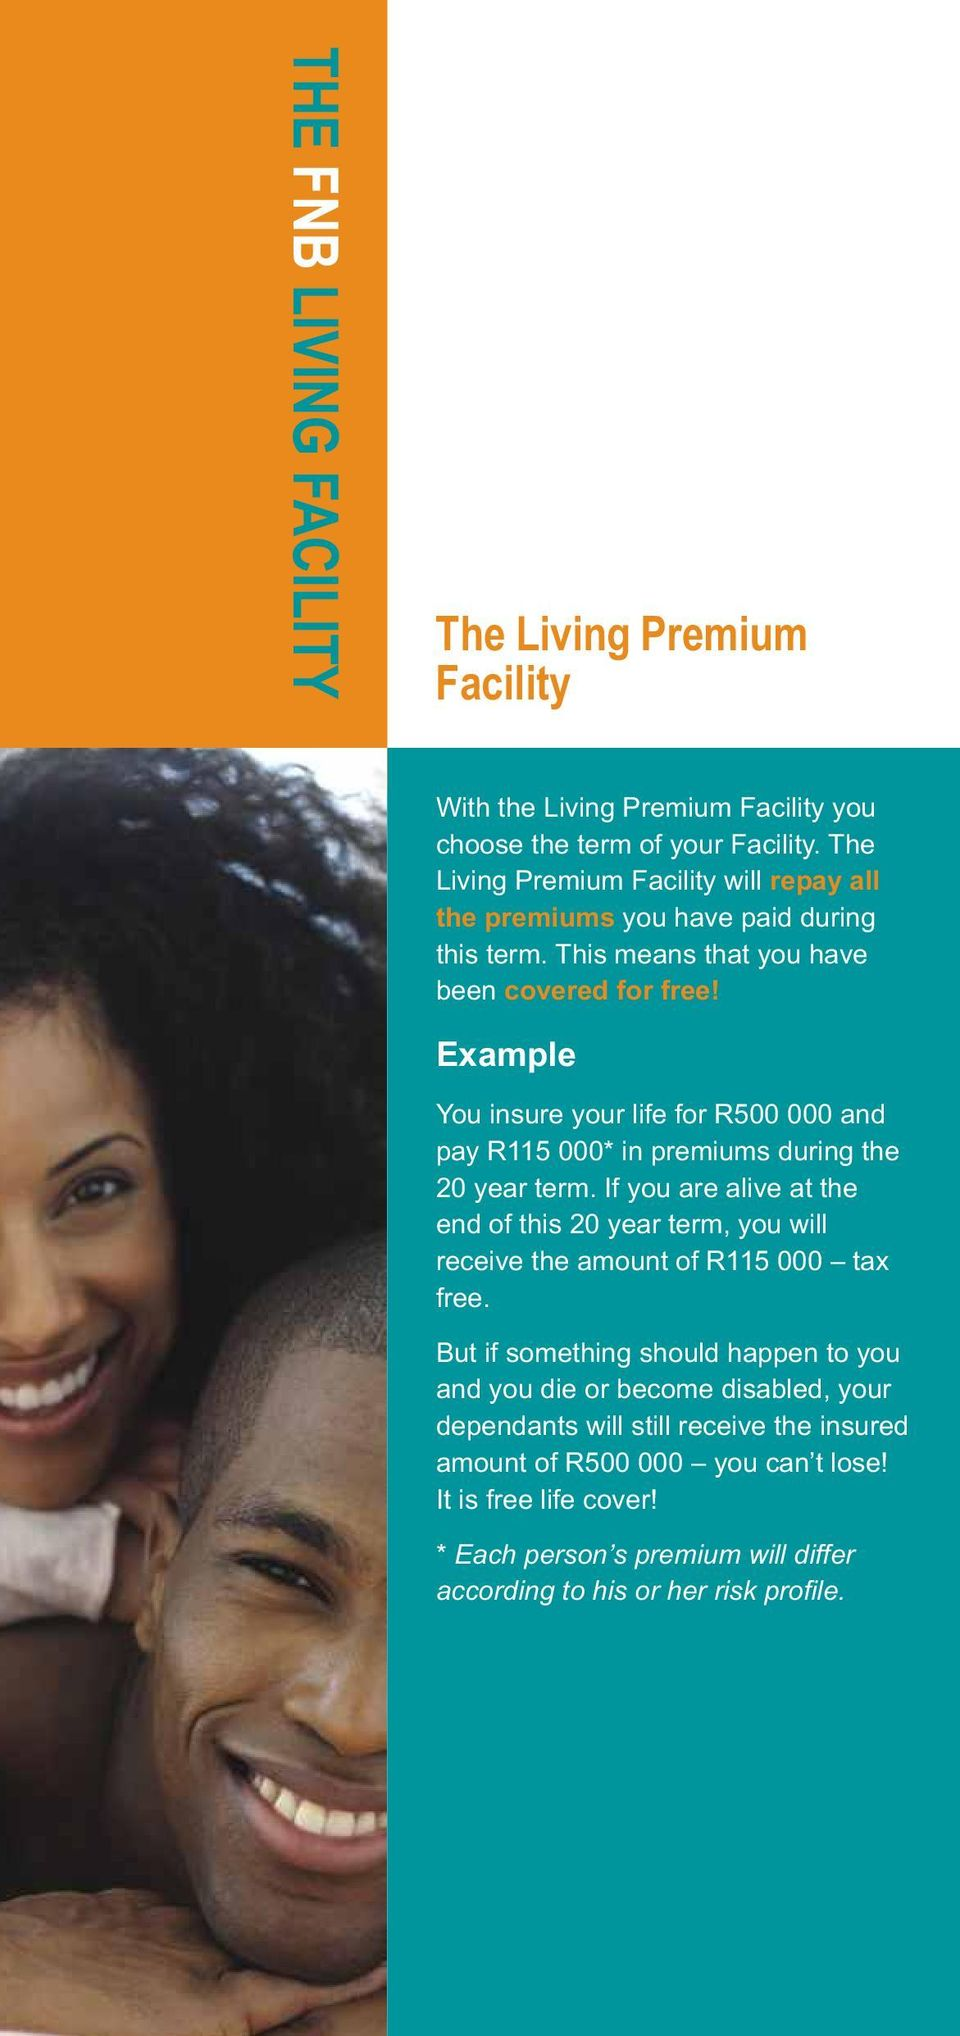 Example You insure your life for R500 000 and pay R115 000* in premiums during the 20 year term.